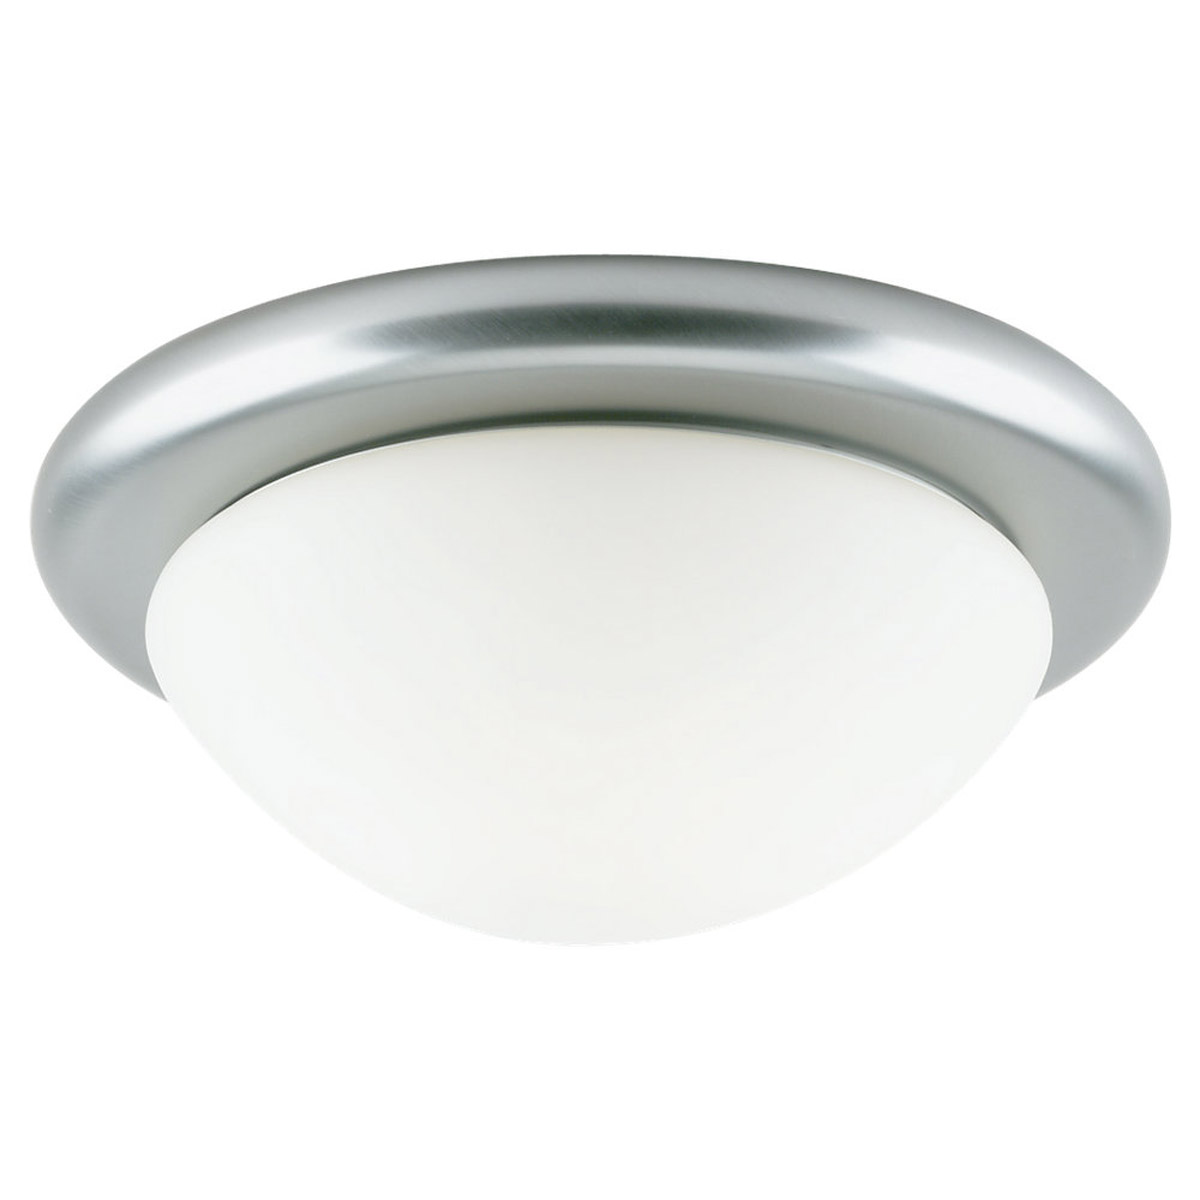 Sea Gull Lighting Twist-Lock Fitters 1 Light Flush Mount in Brushed Nickel 53069-962